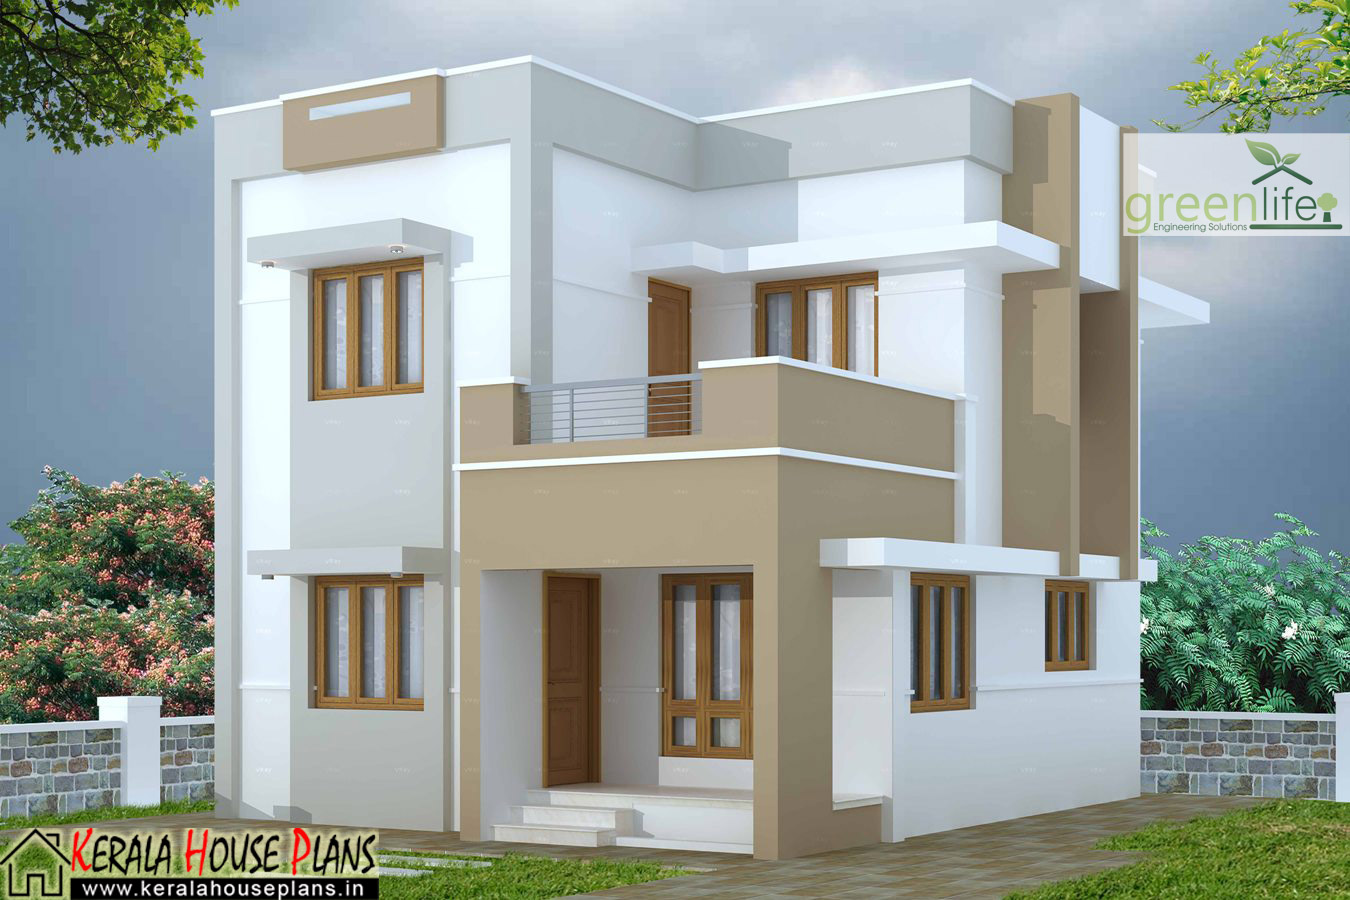 1280 Sqft 3 Bhk House Design At 3 Cent Plot Kerala House